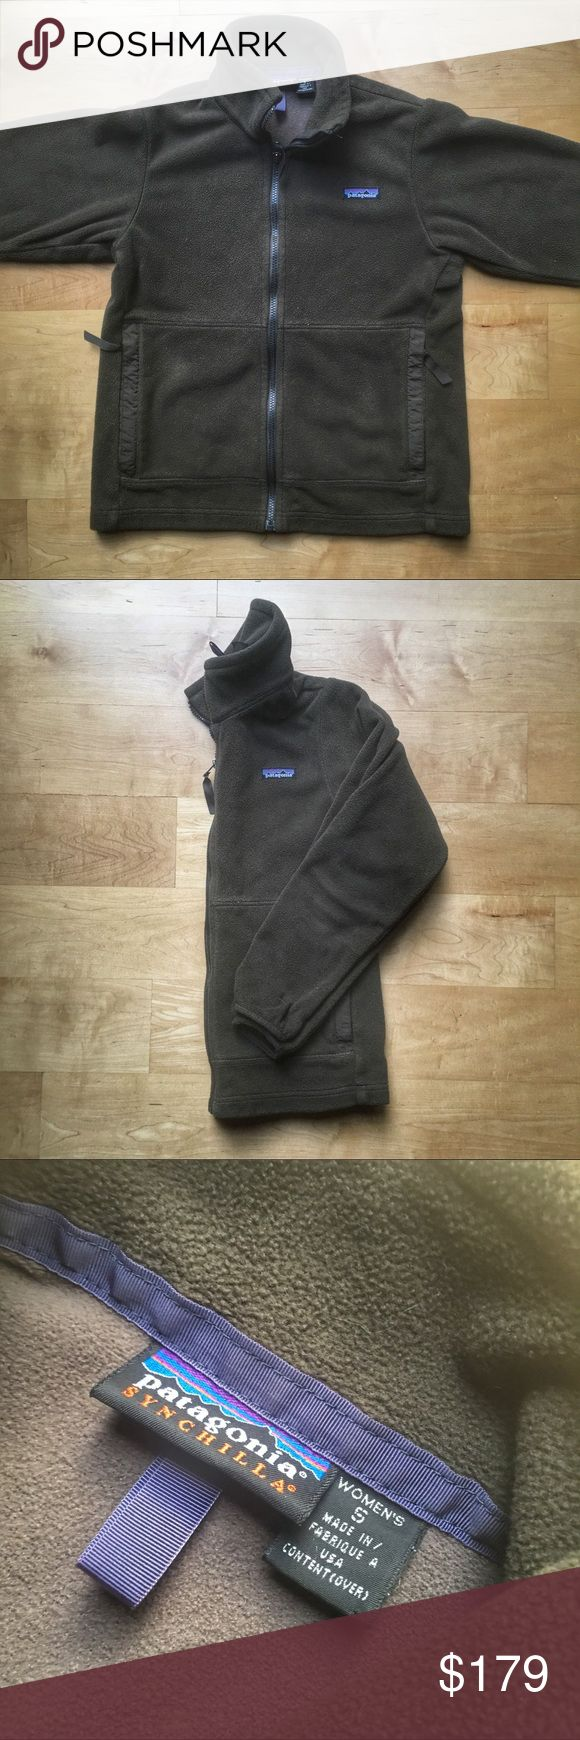 PRICE FIRM - Vintage Patagonia Synchilla Jacket PRICE IS FIRM - Vintage Patagonia Fall 2001 Synchilla Fleece Zip-up Jacket.  Pre-owned in excellent condition.  Size small.  Color is a greenish brown. See something you like but it's not here next week? We sell in store and across multiple platforms, so items go quick! If you're interested, act on it before you lose it Patagonia Jackets & Coats